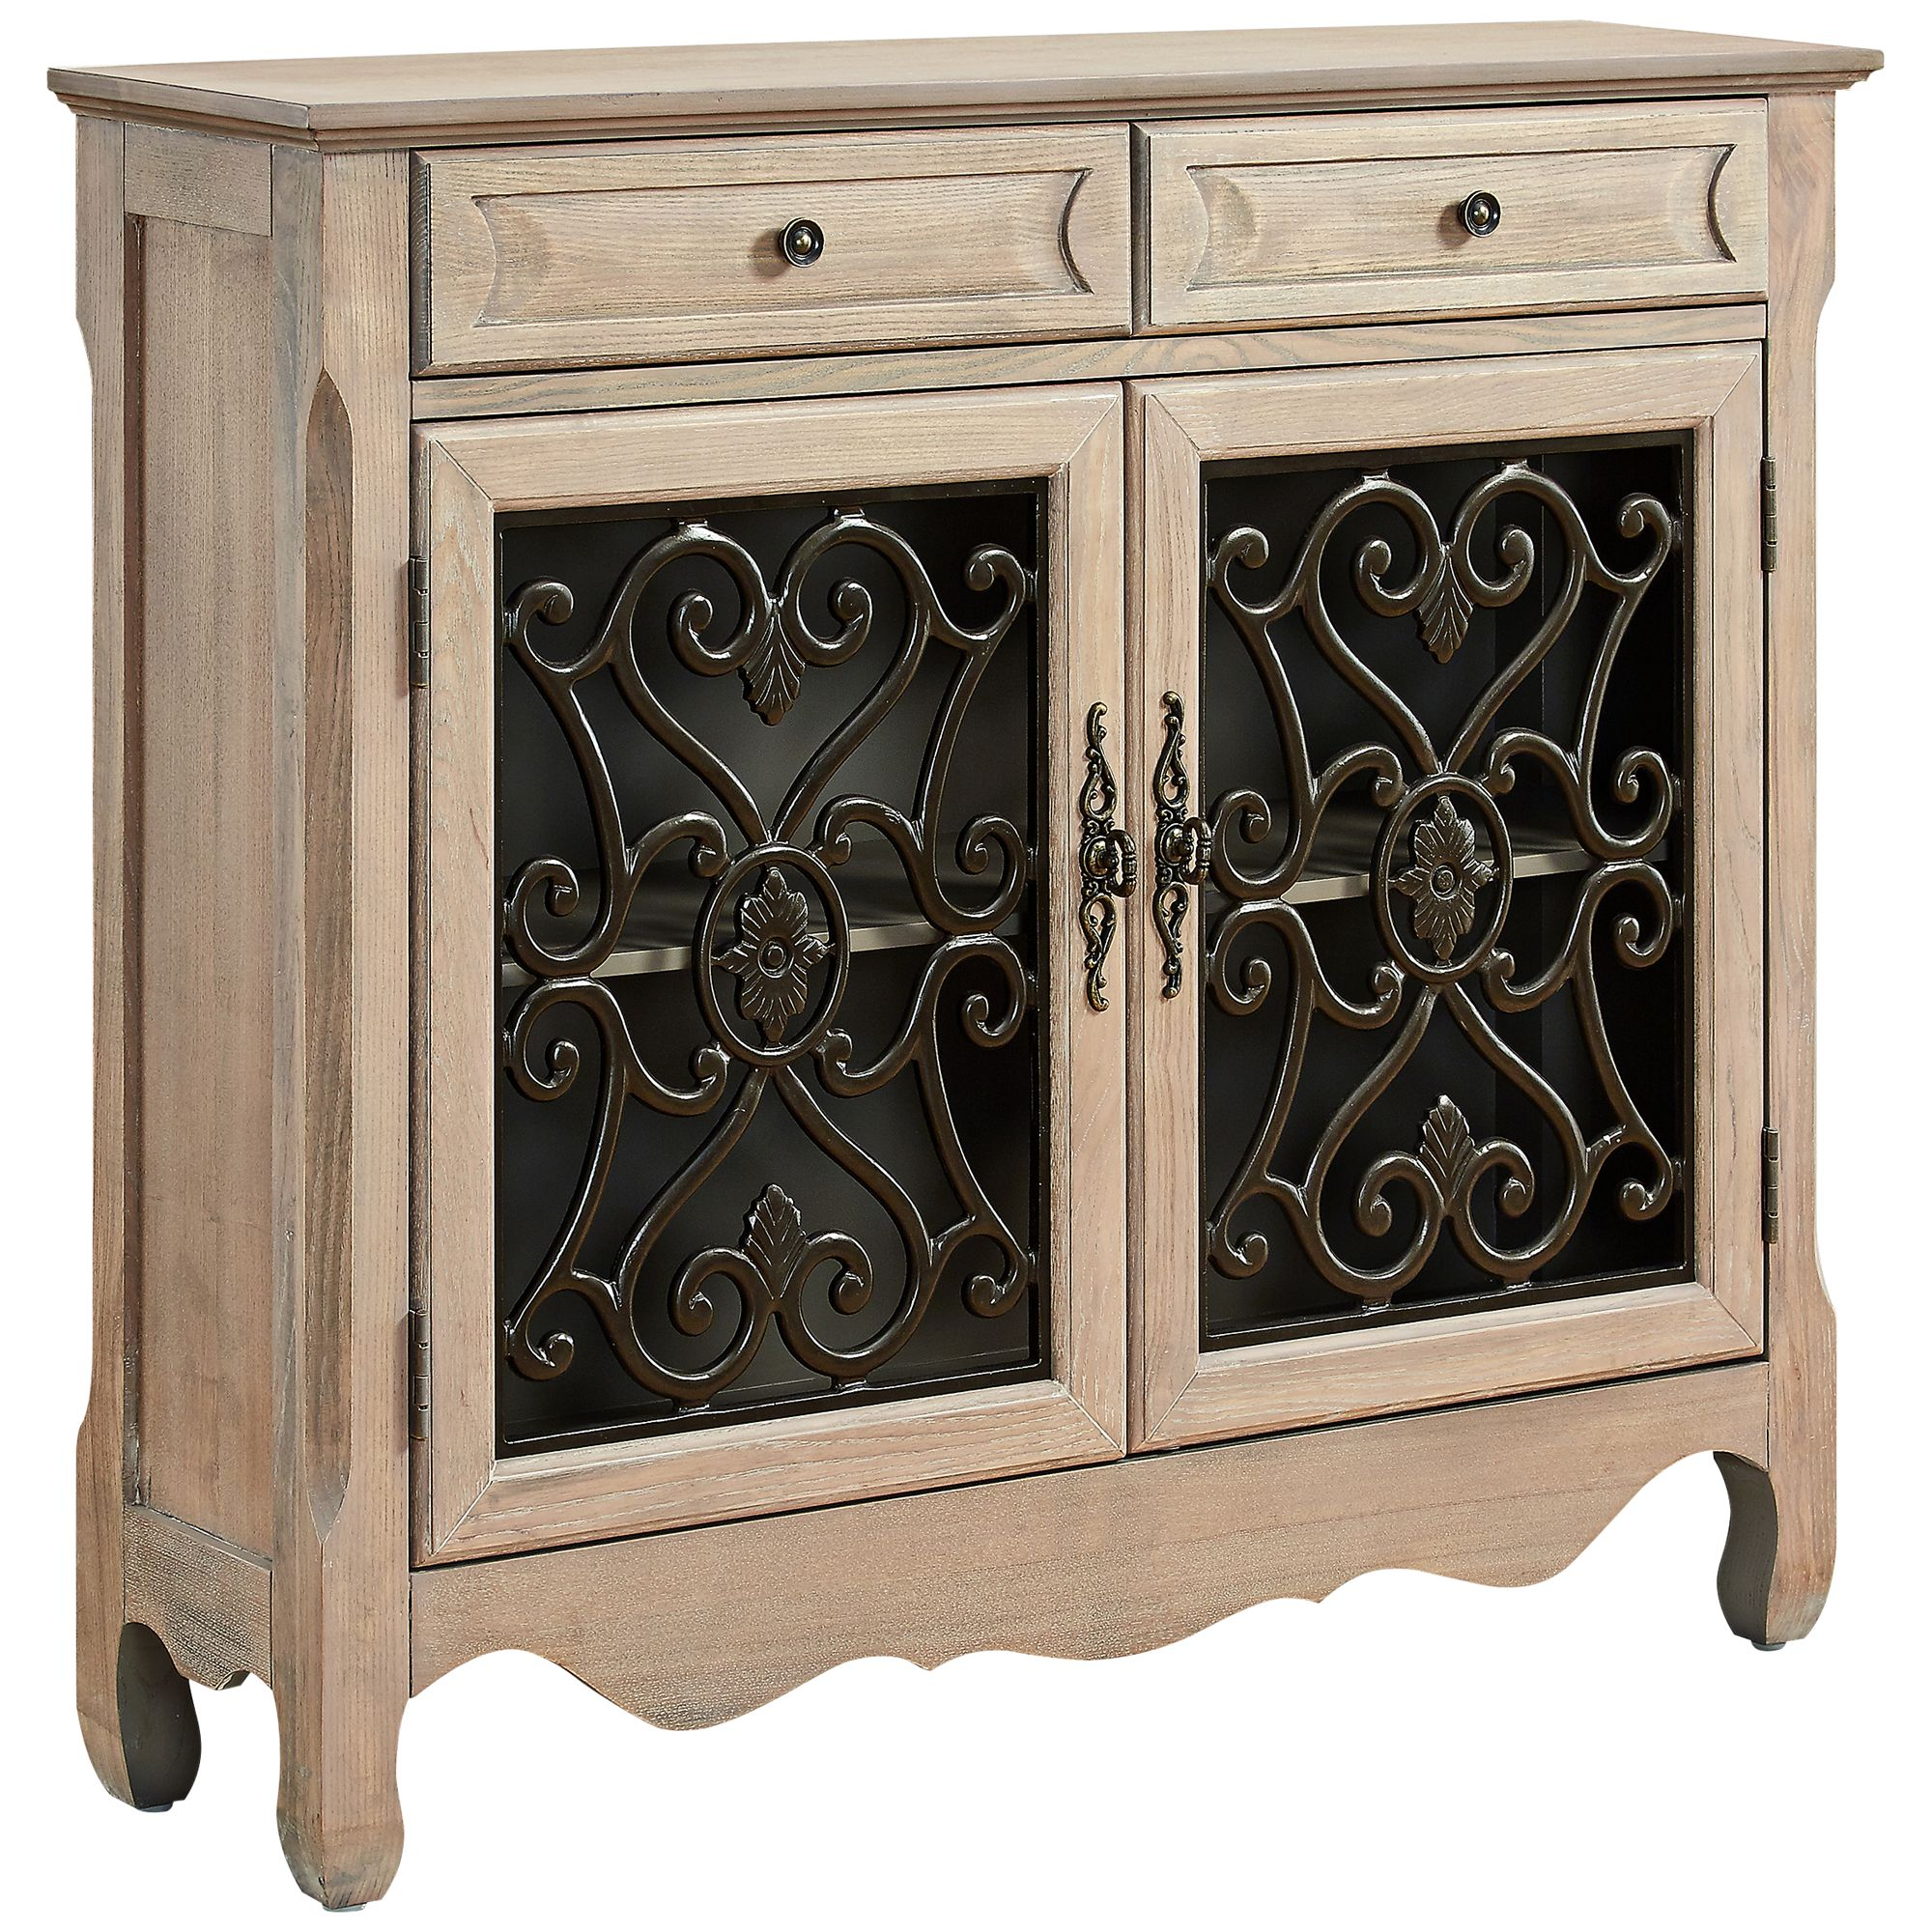 Rustic Lodge Cabinets And Storage Lamps Plus